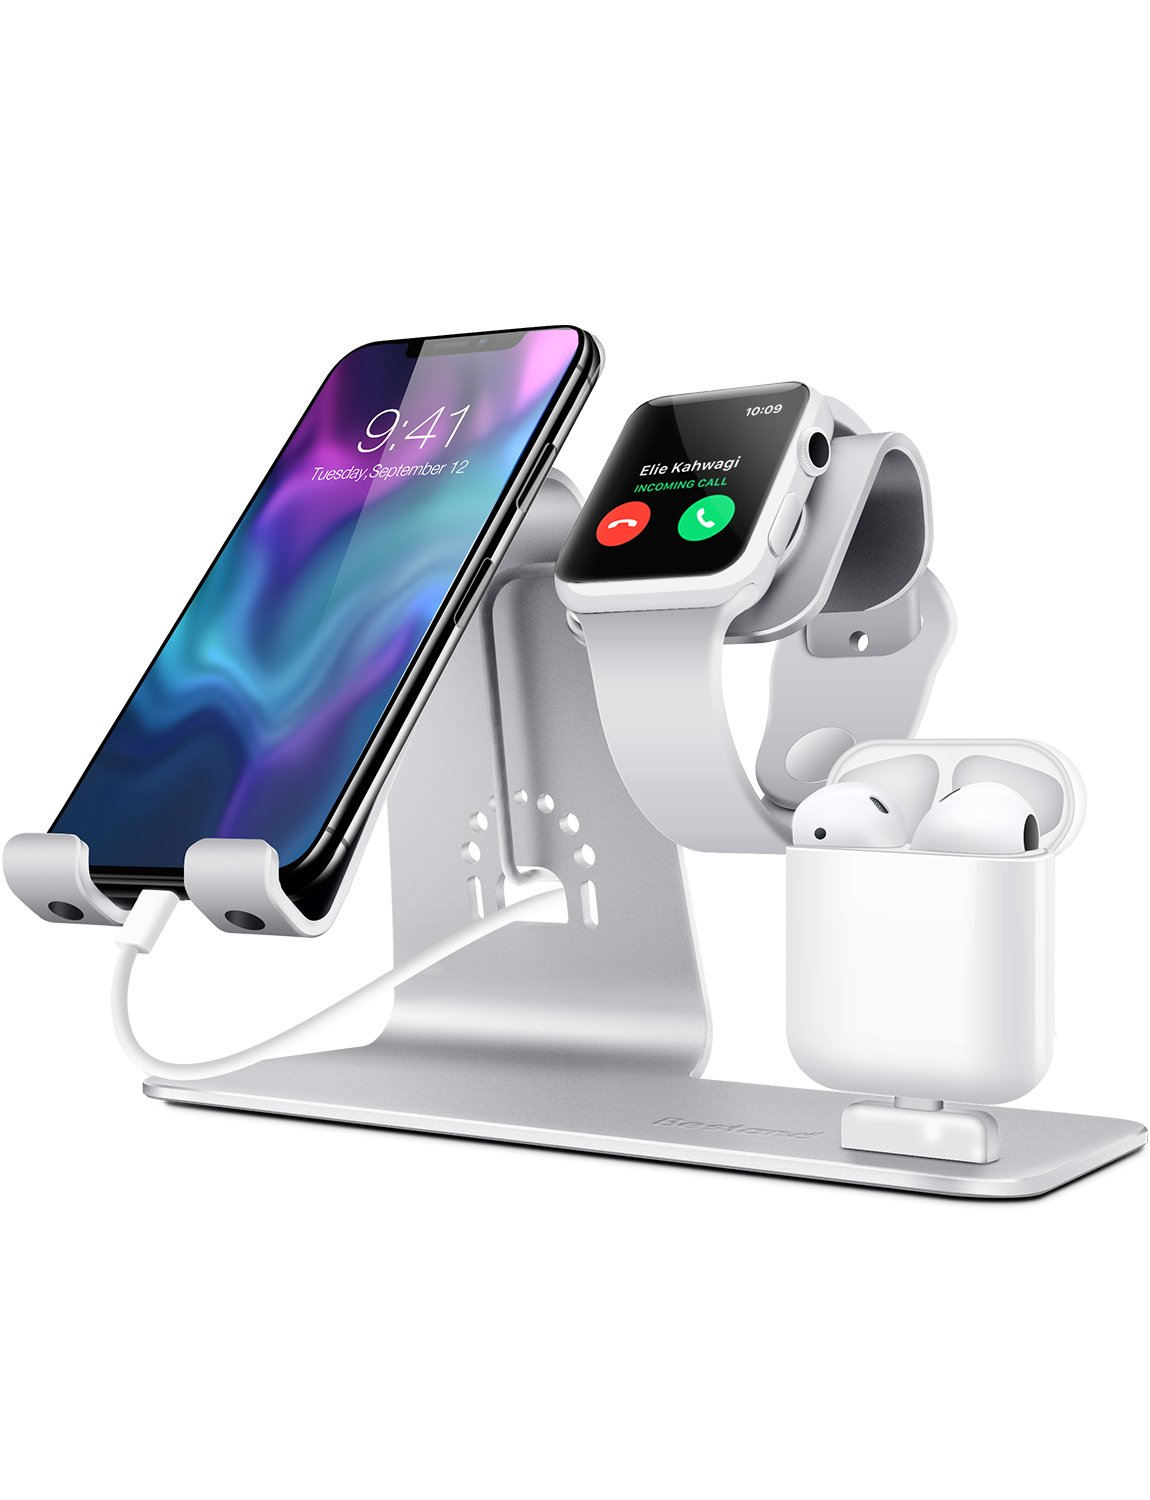 Bestand3 in 1 Apple iWatch Stand, Airpods Charger Dock, Phone Desktop Tablet Holder for Airpods, Apple Watch/ iPhone X/8 Plus/8/ 7 Plus/ iPad, Silver(Patenting, Airpods Charging Case NOT Included) by Bestand